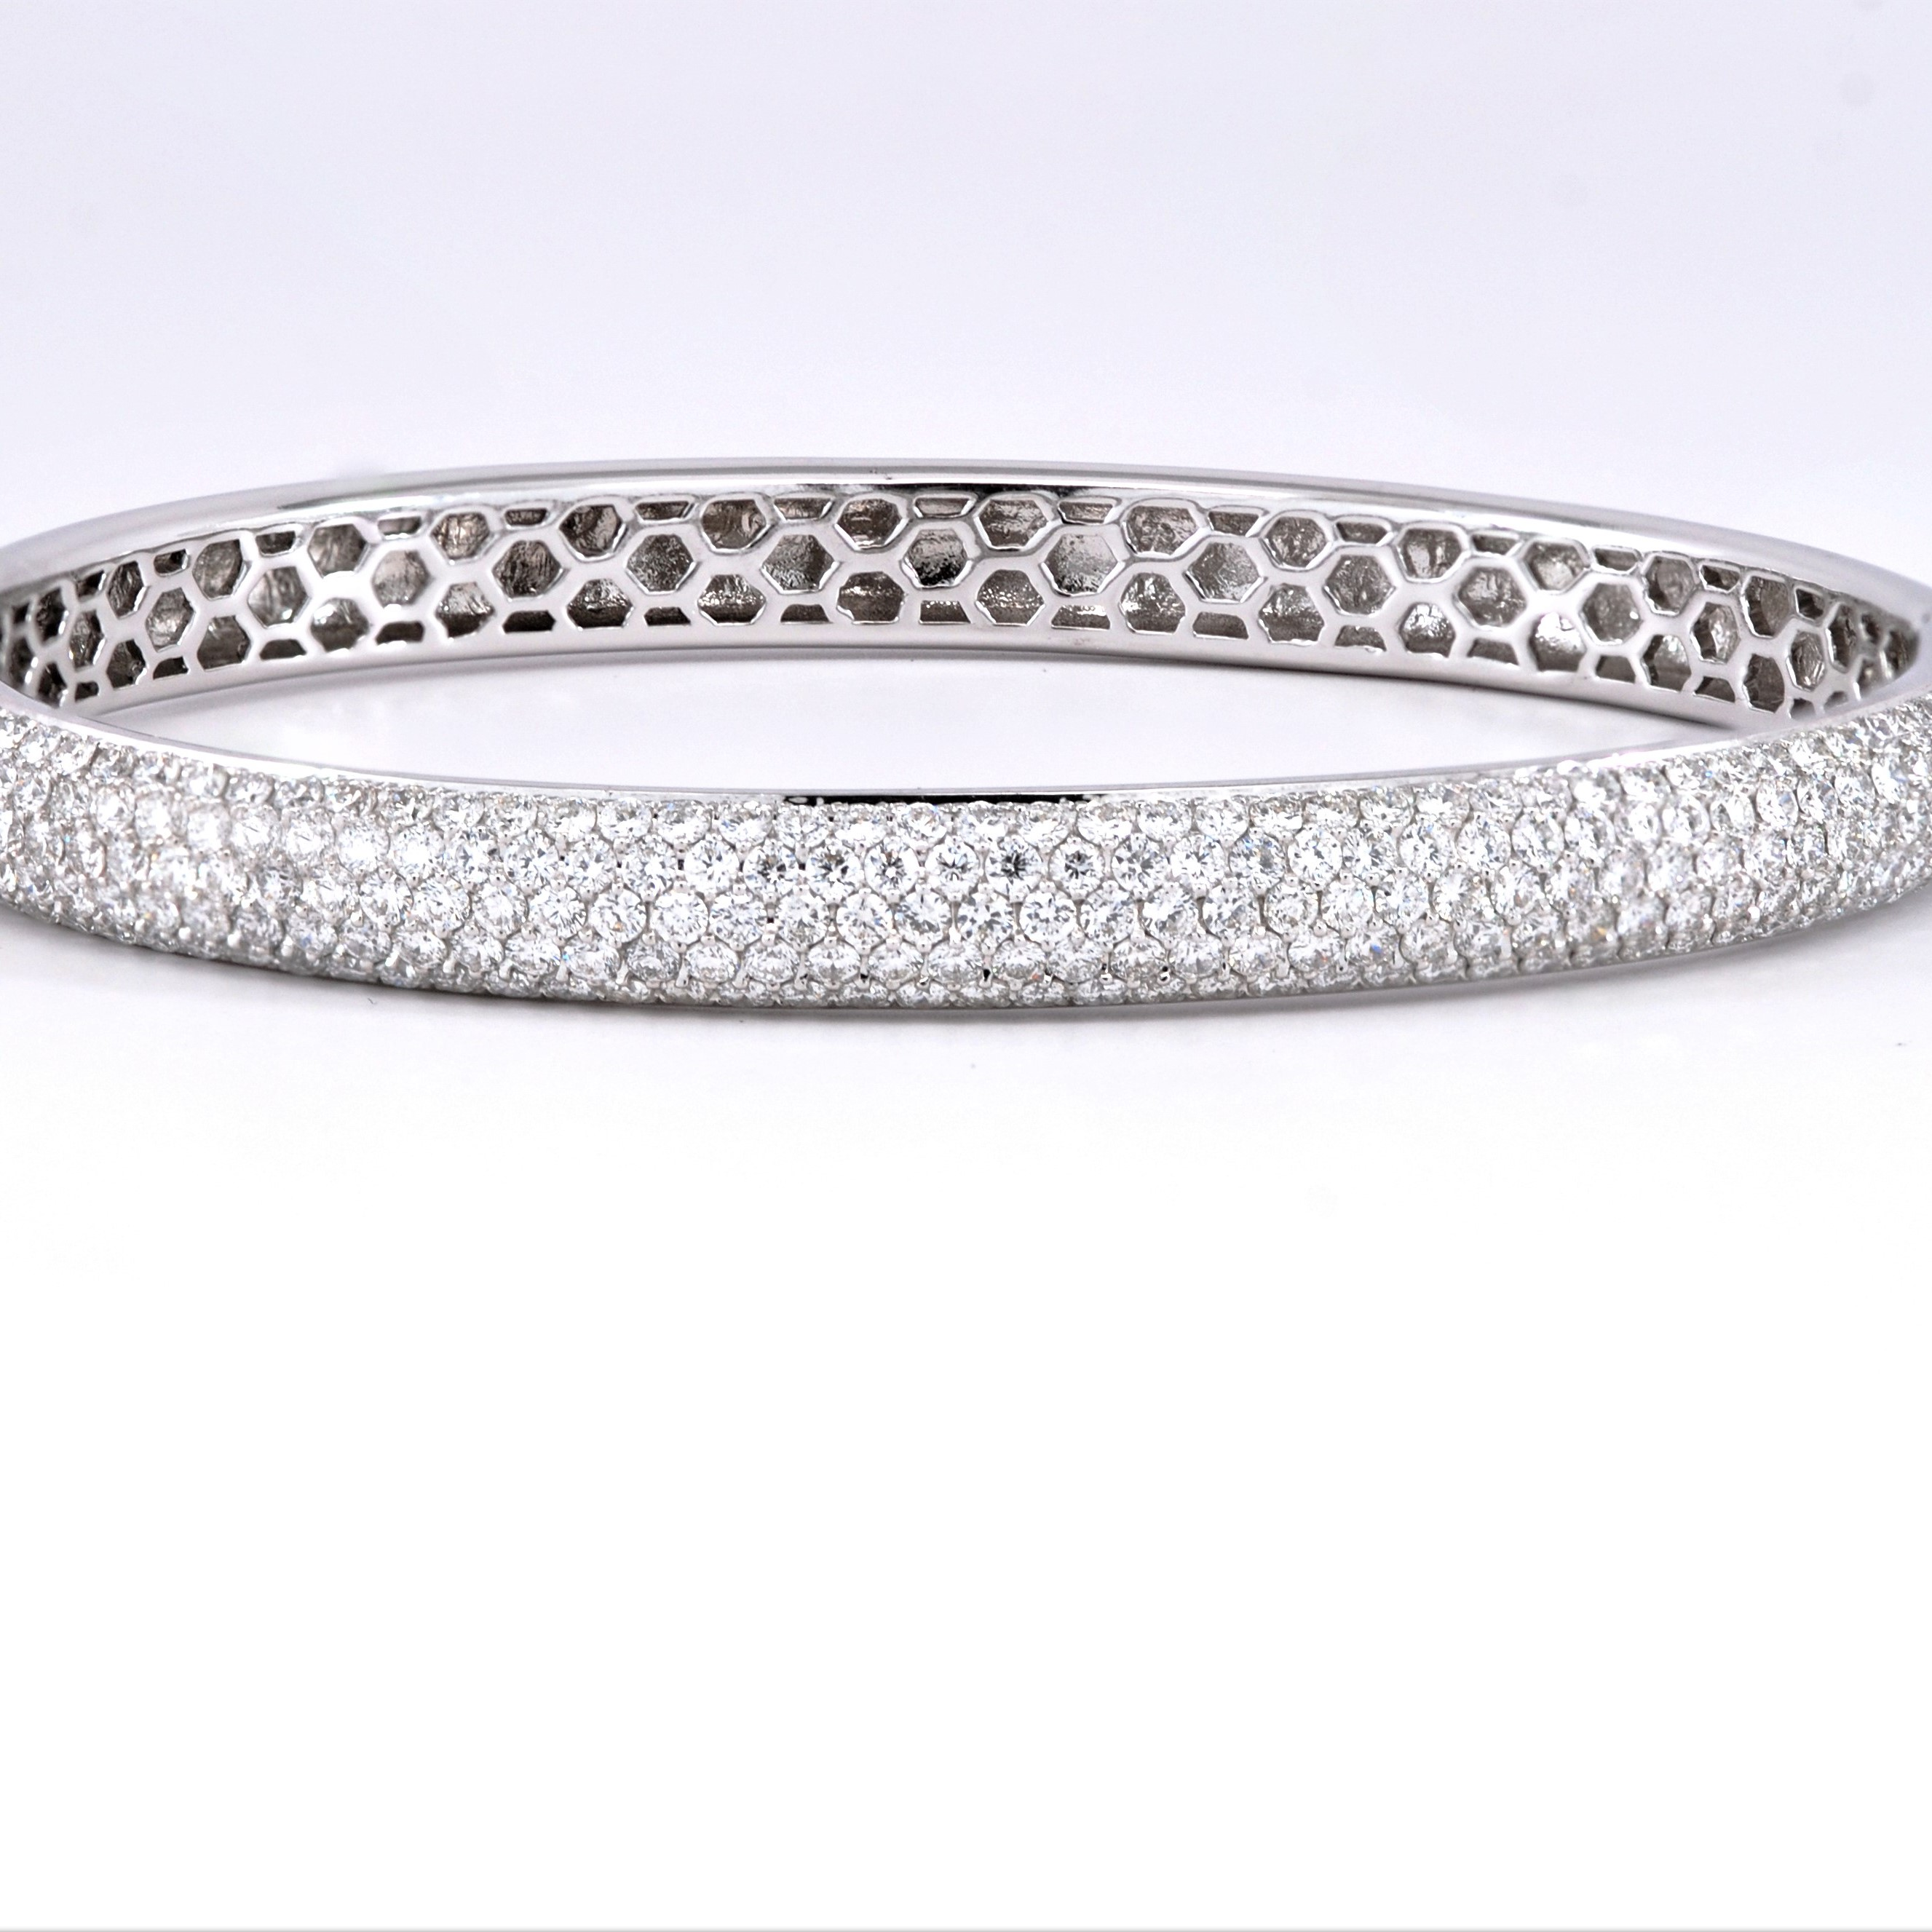 jewelers exclusive diamond bangle love bangles reeds in silver princess bracelet